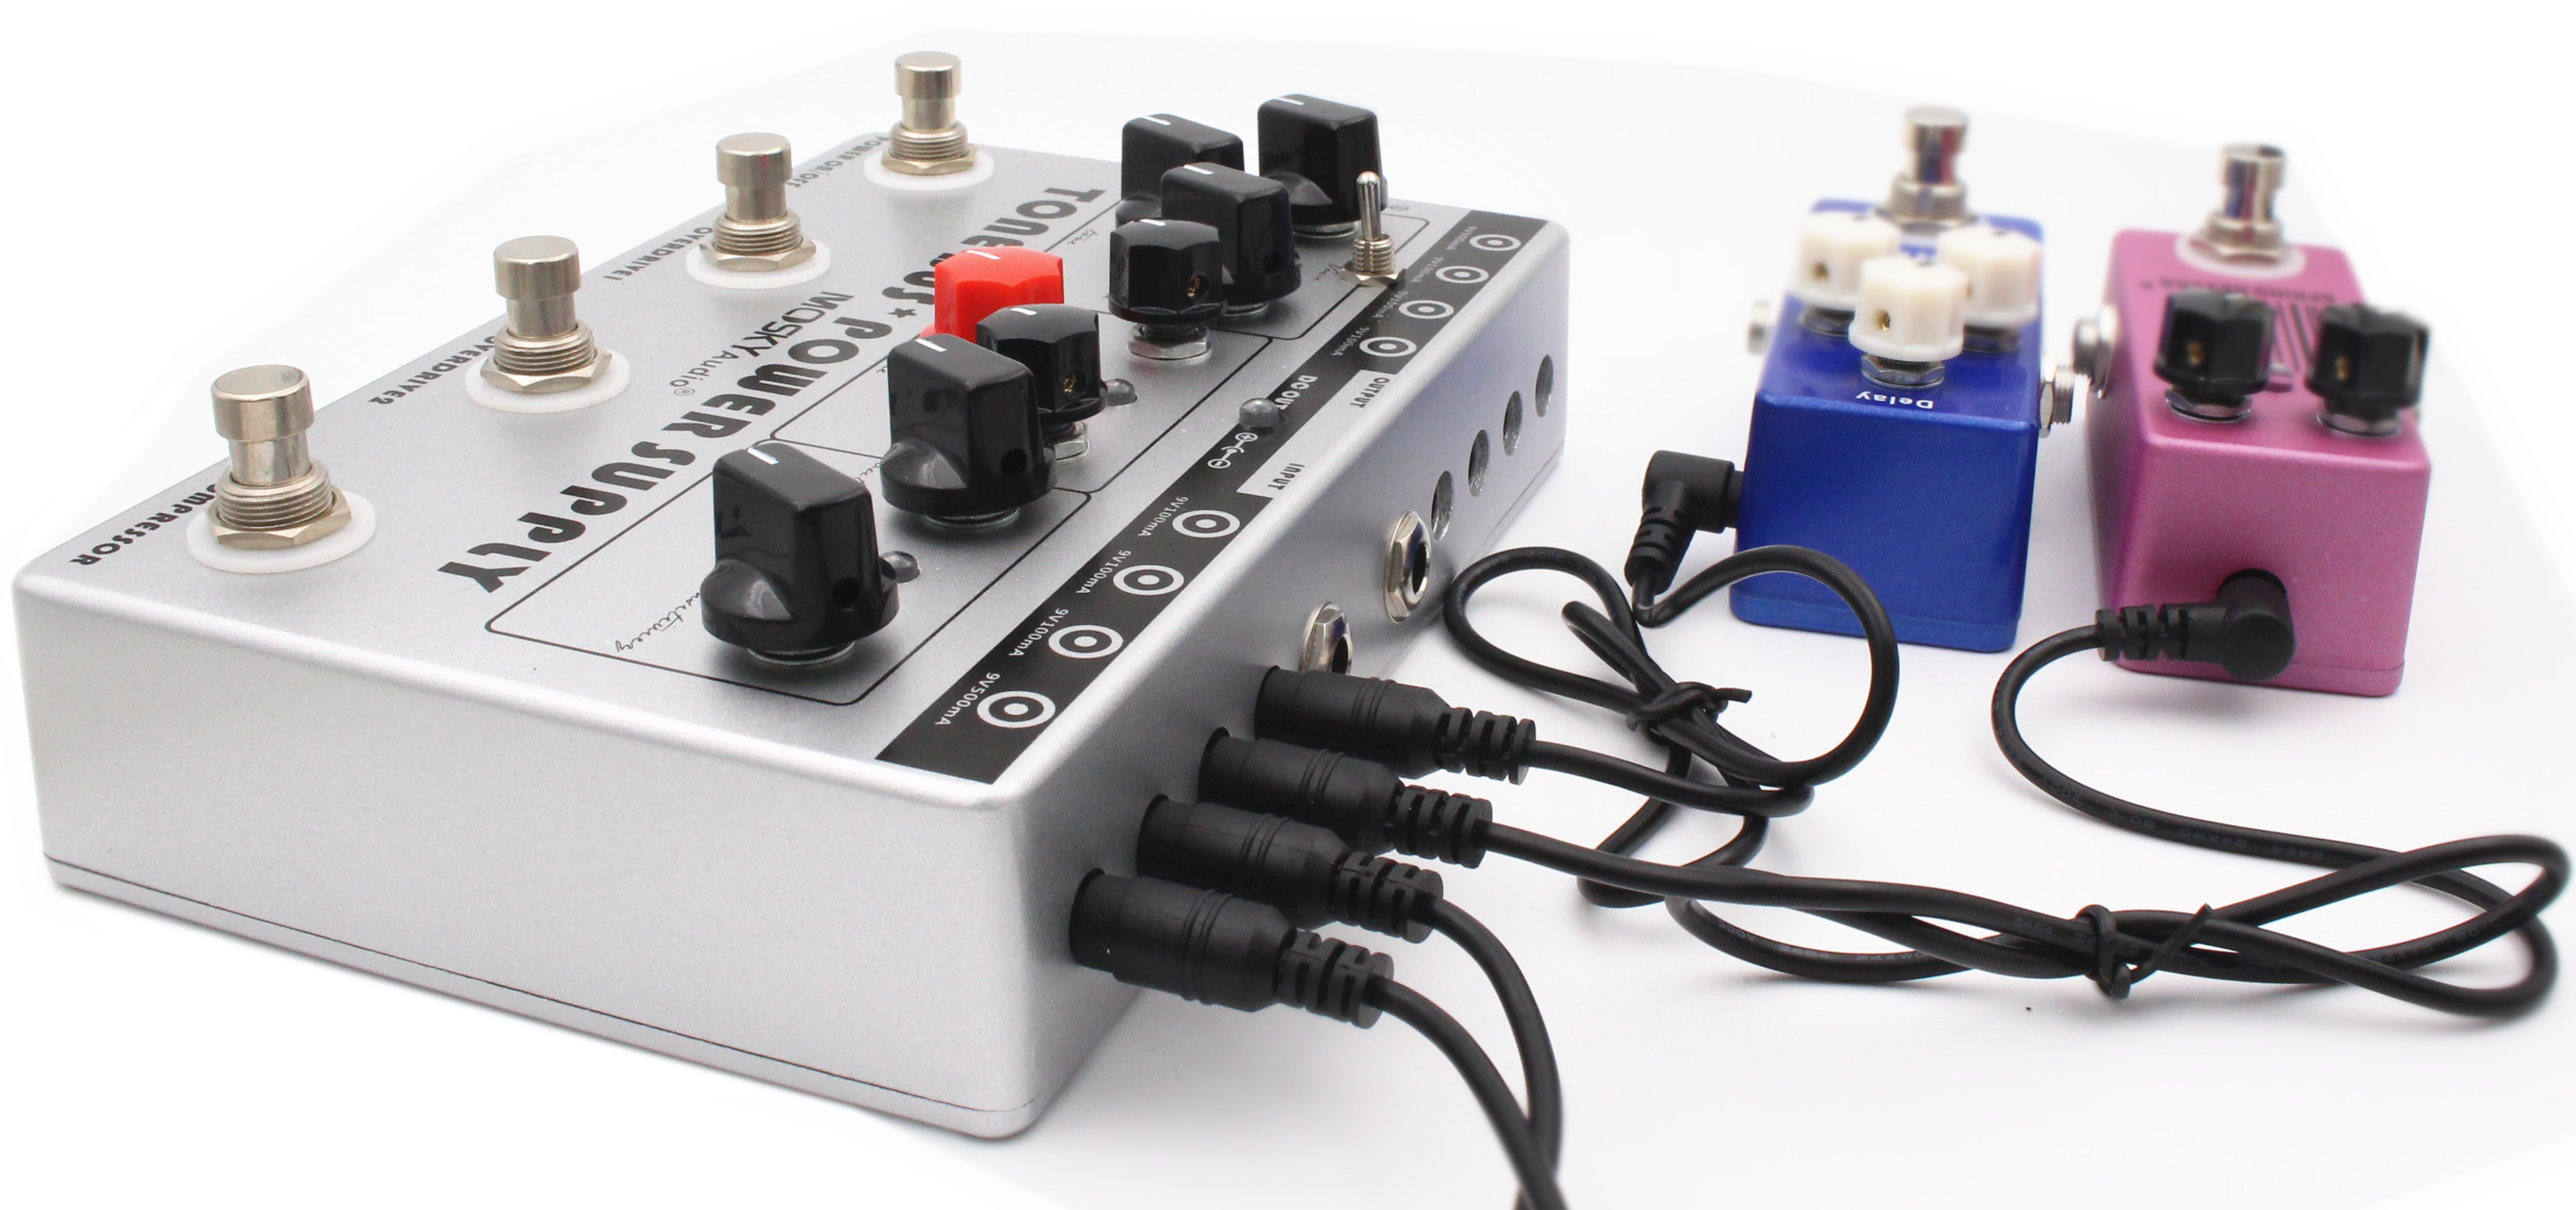 tone buse power supply effects pedal pedal power supply. Black Bedroom Furniture Sets. Home Design Ideas